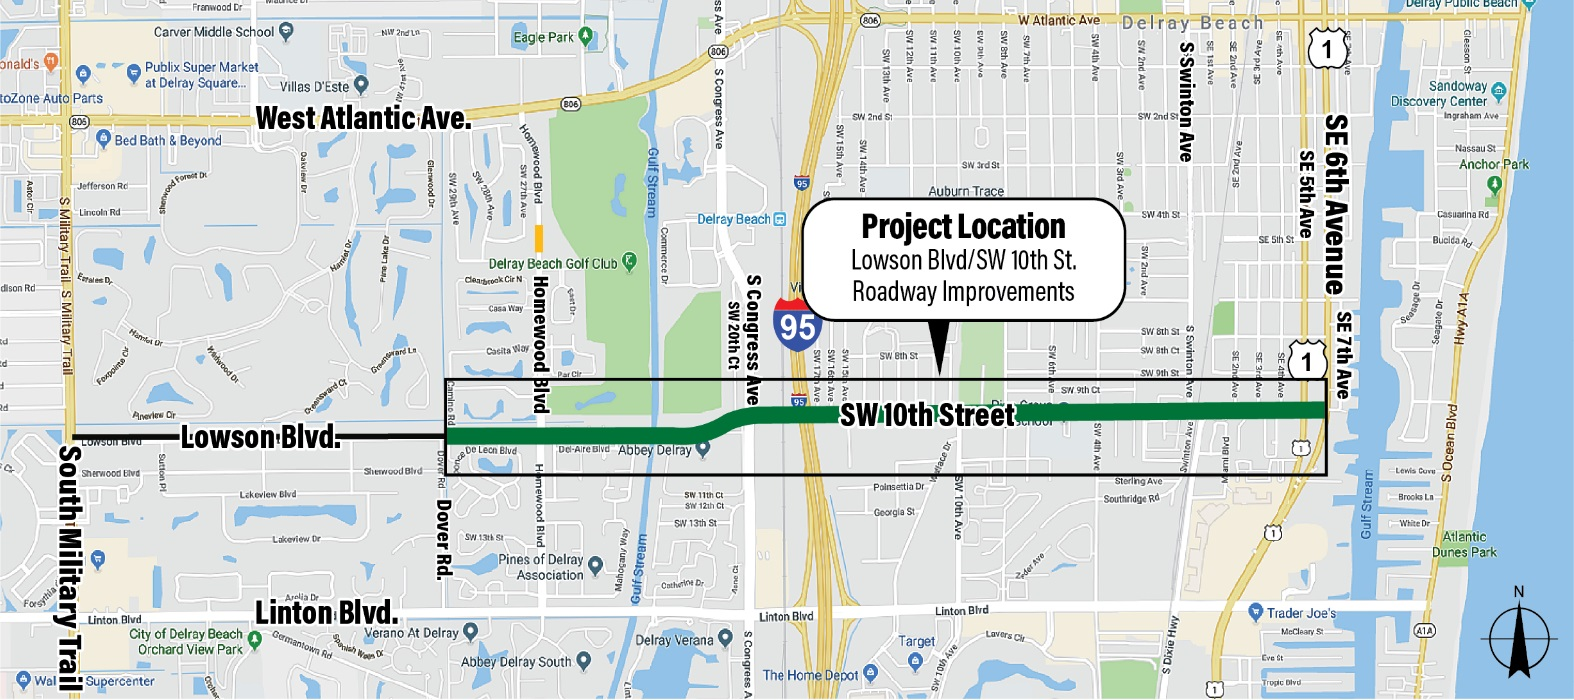 Lowson Blvd. / SW 10th St. Project Map